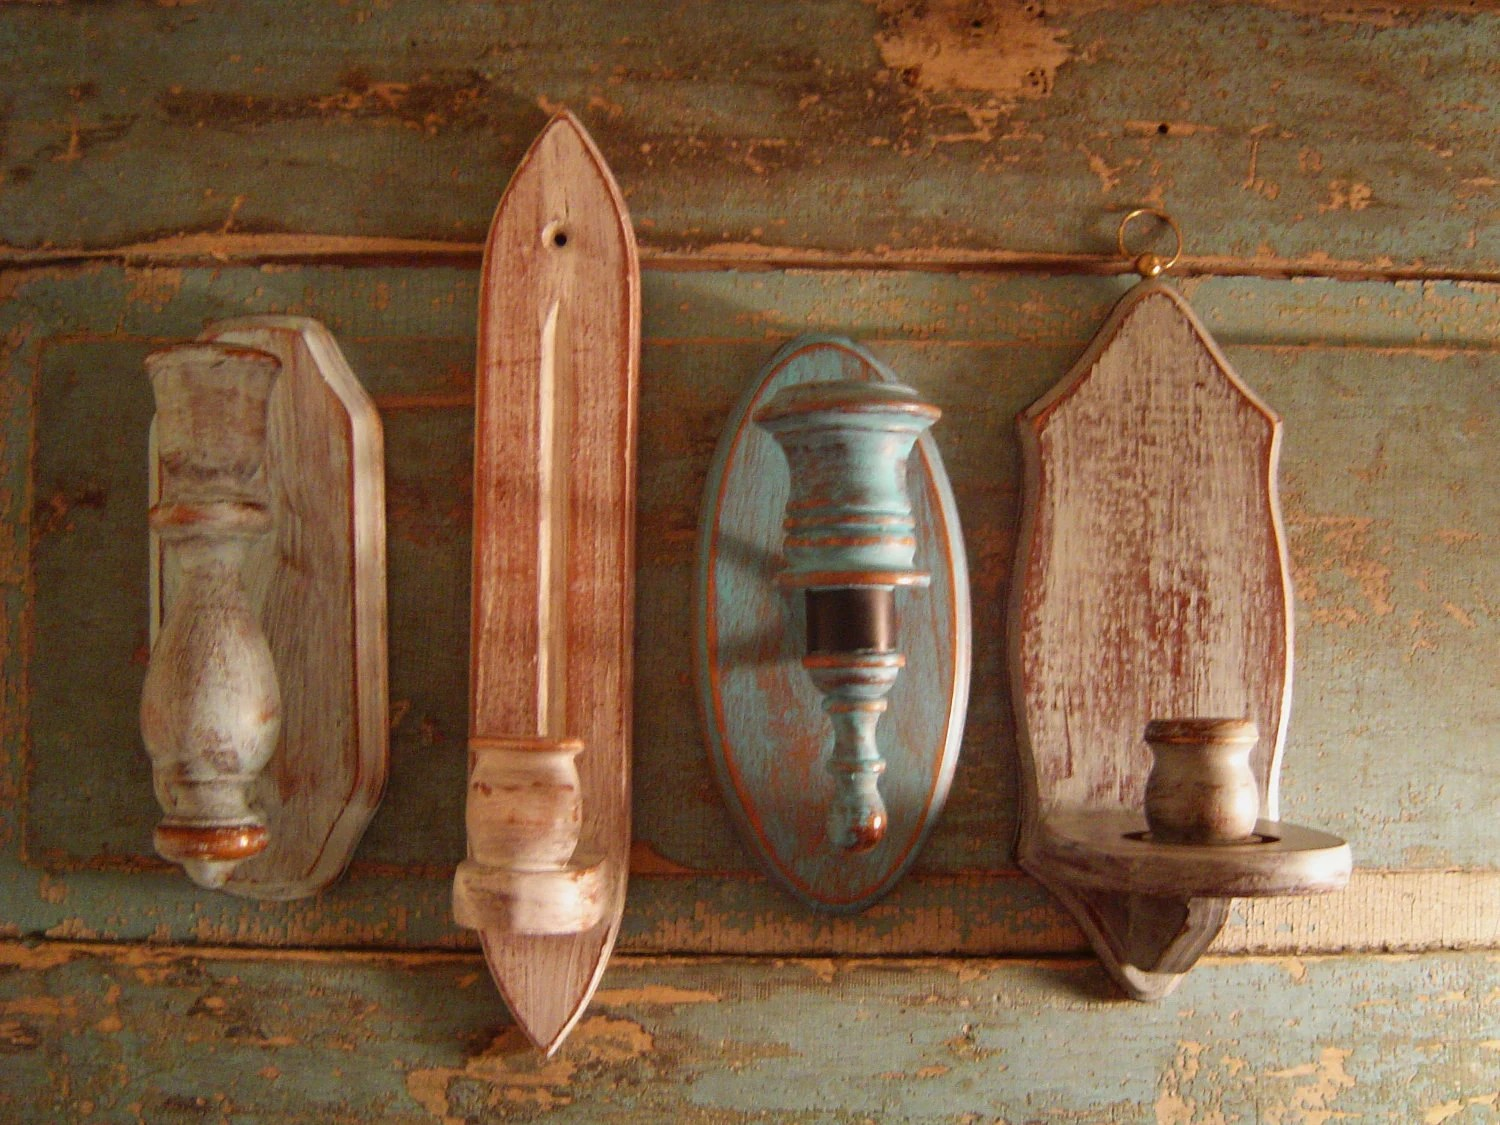 Candle Holder Wall Sconces Wood Distressed Cloudy Skies on Wood Wall Sconces id=74992